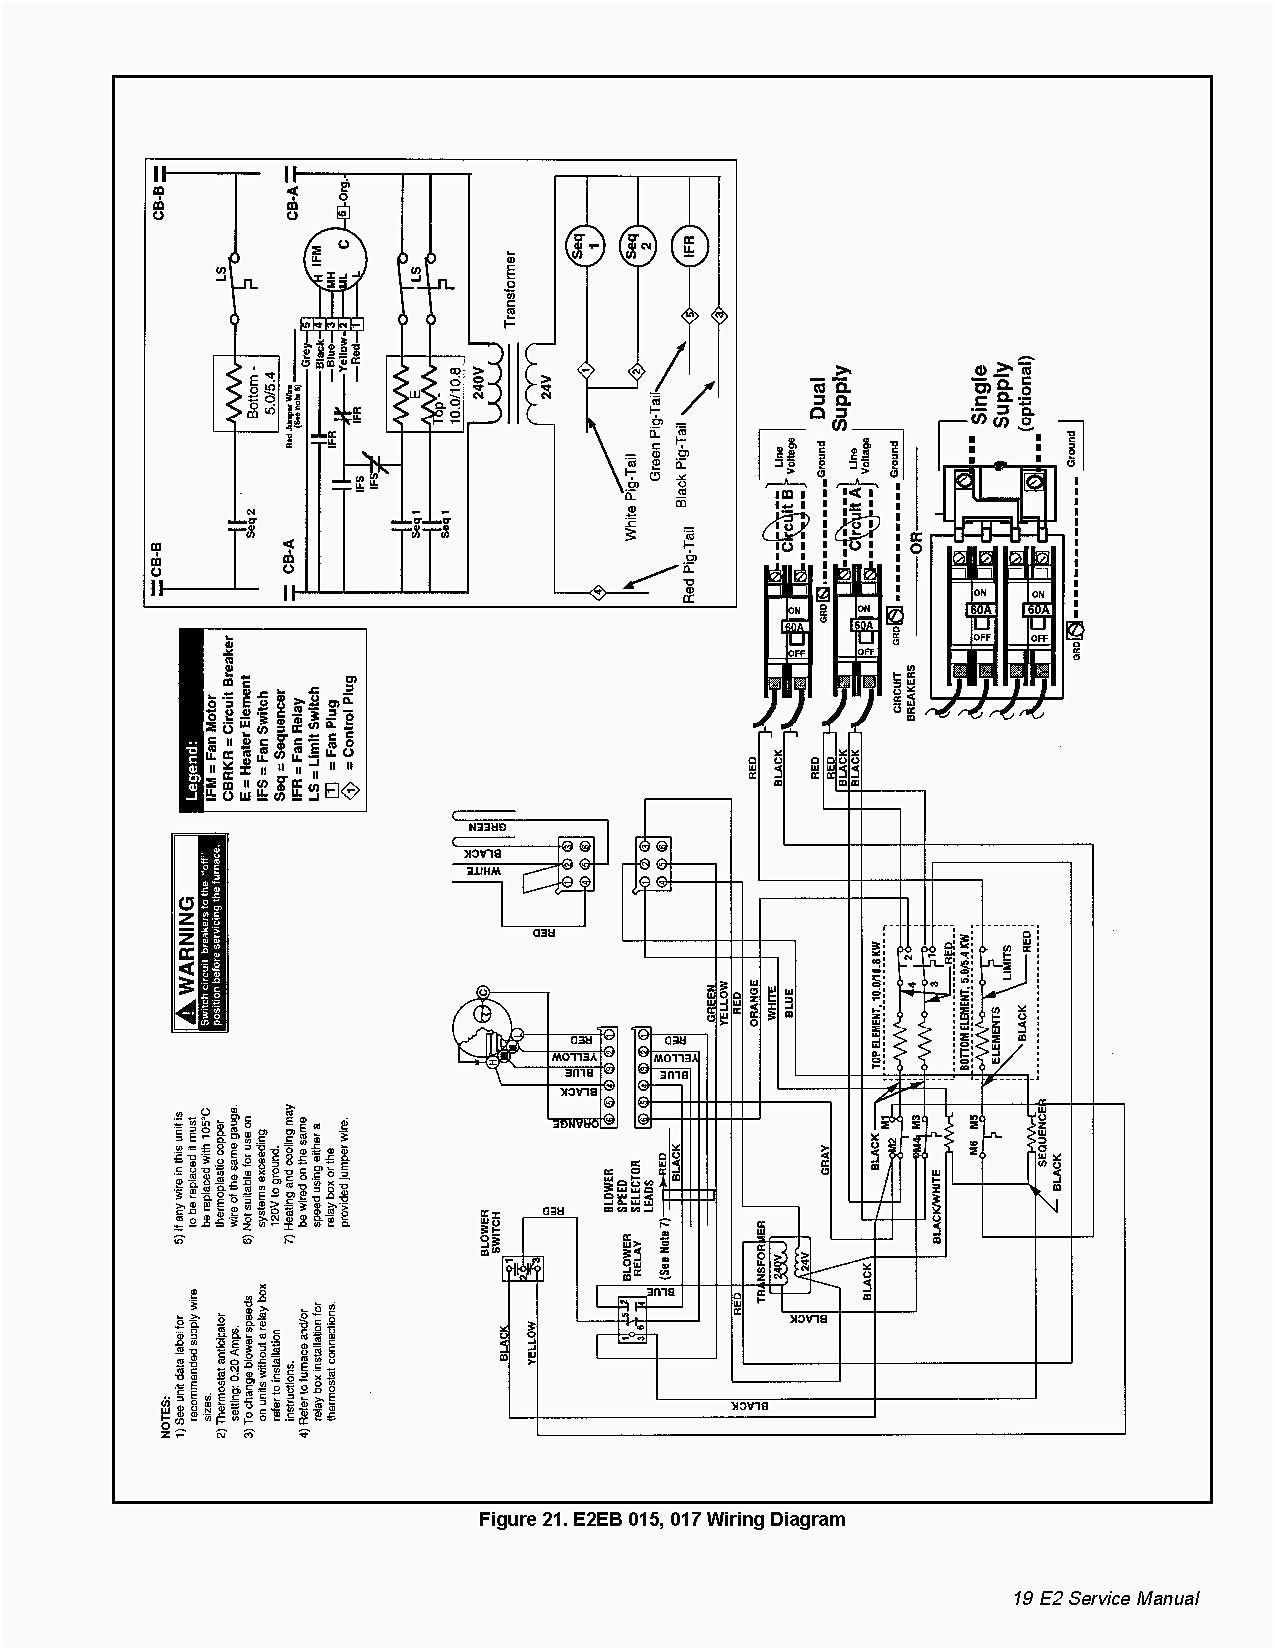 [DIAGRAM] Krpa 11ag 120 Wiring Diagram Collection Wiring